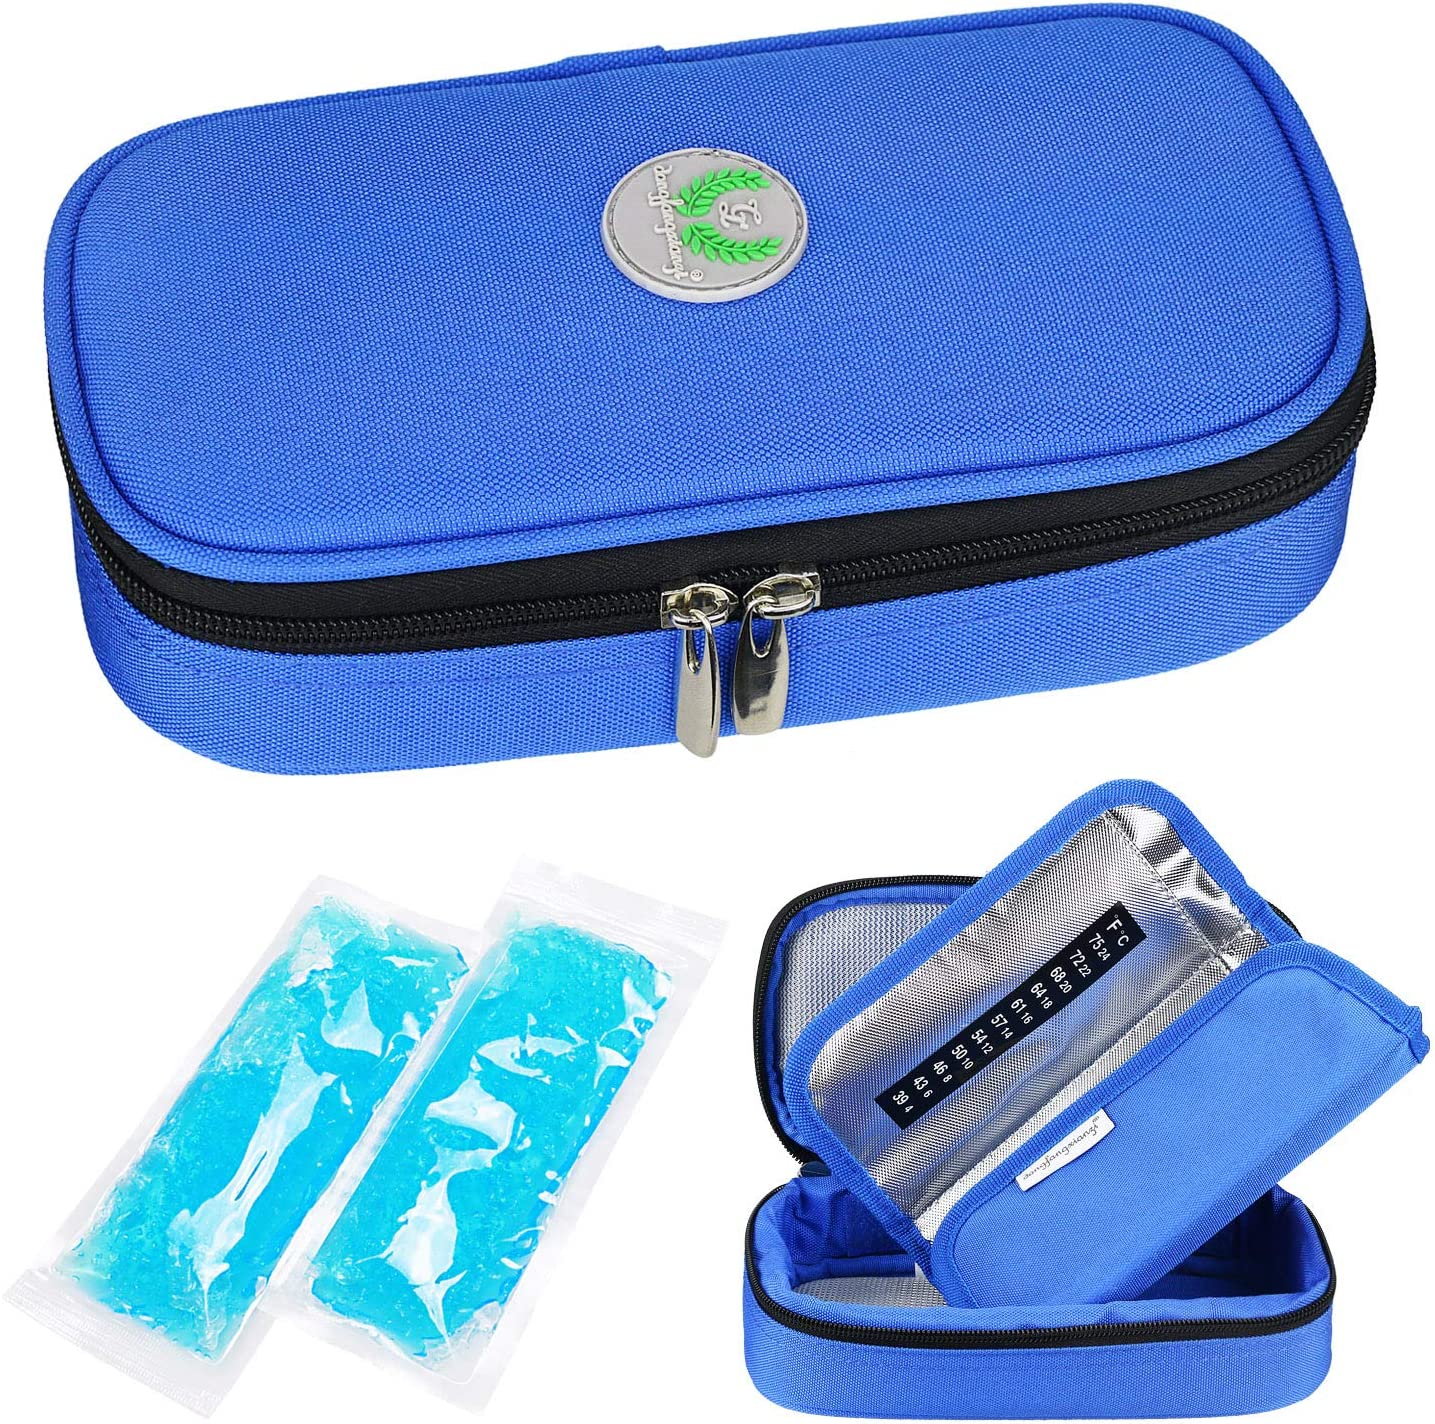 YOUSHARES Insulin Cooler Travel Case - Medication Diabetic Insulated Organizer Portable Cooling Bag for Insulin Pen and Diabetic Supplies with 2 Cooler Ice Pack (Blue)